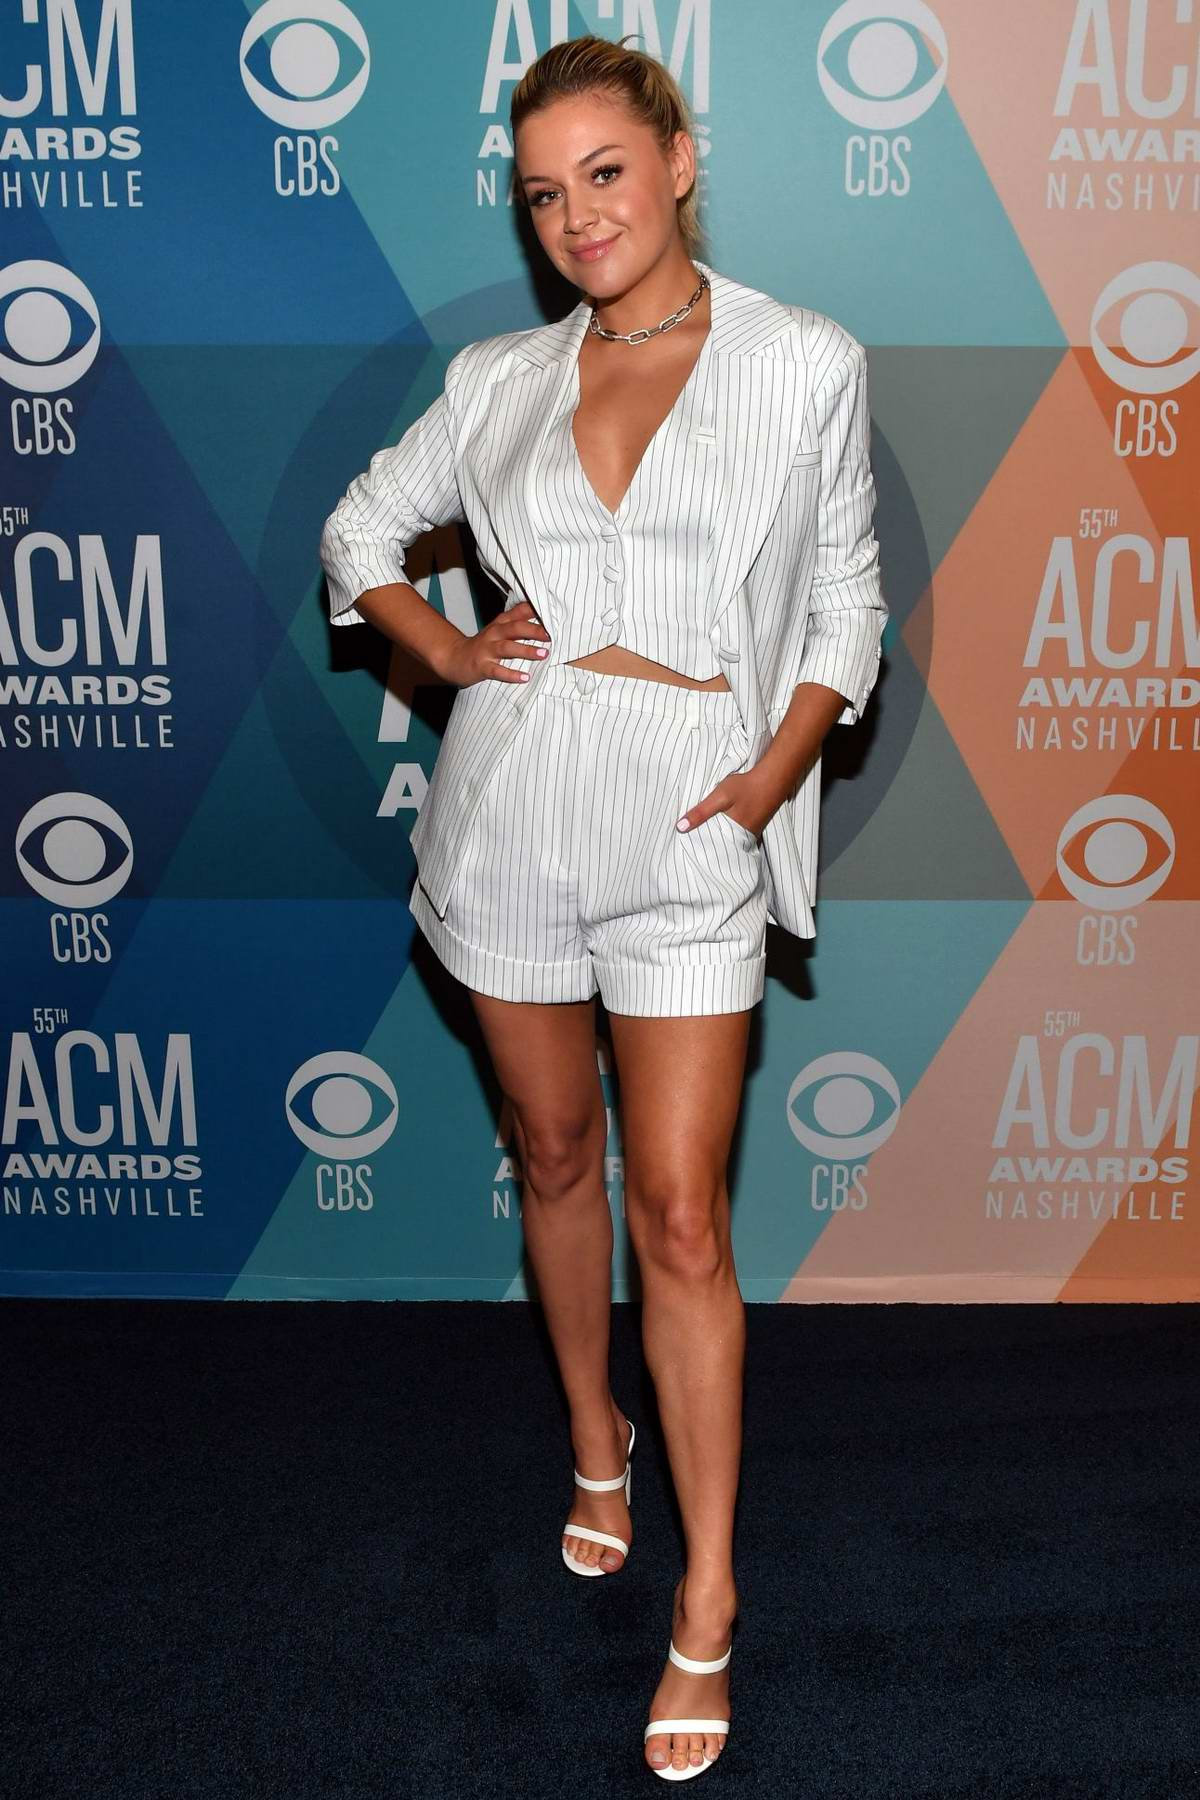 Kelsea Ballerini attends virtual radio row during the 55th ACM Awards in Nashville, Tennessee